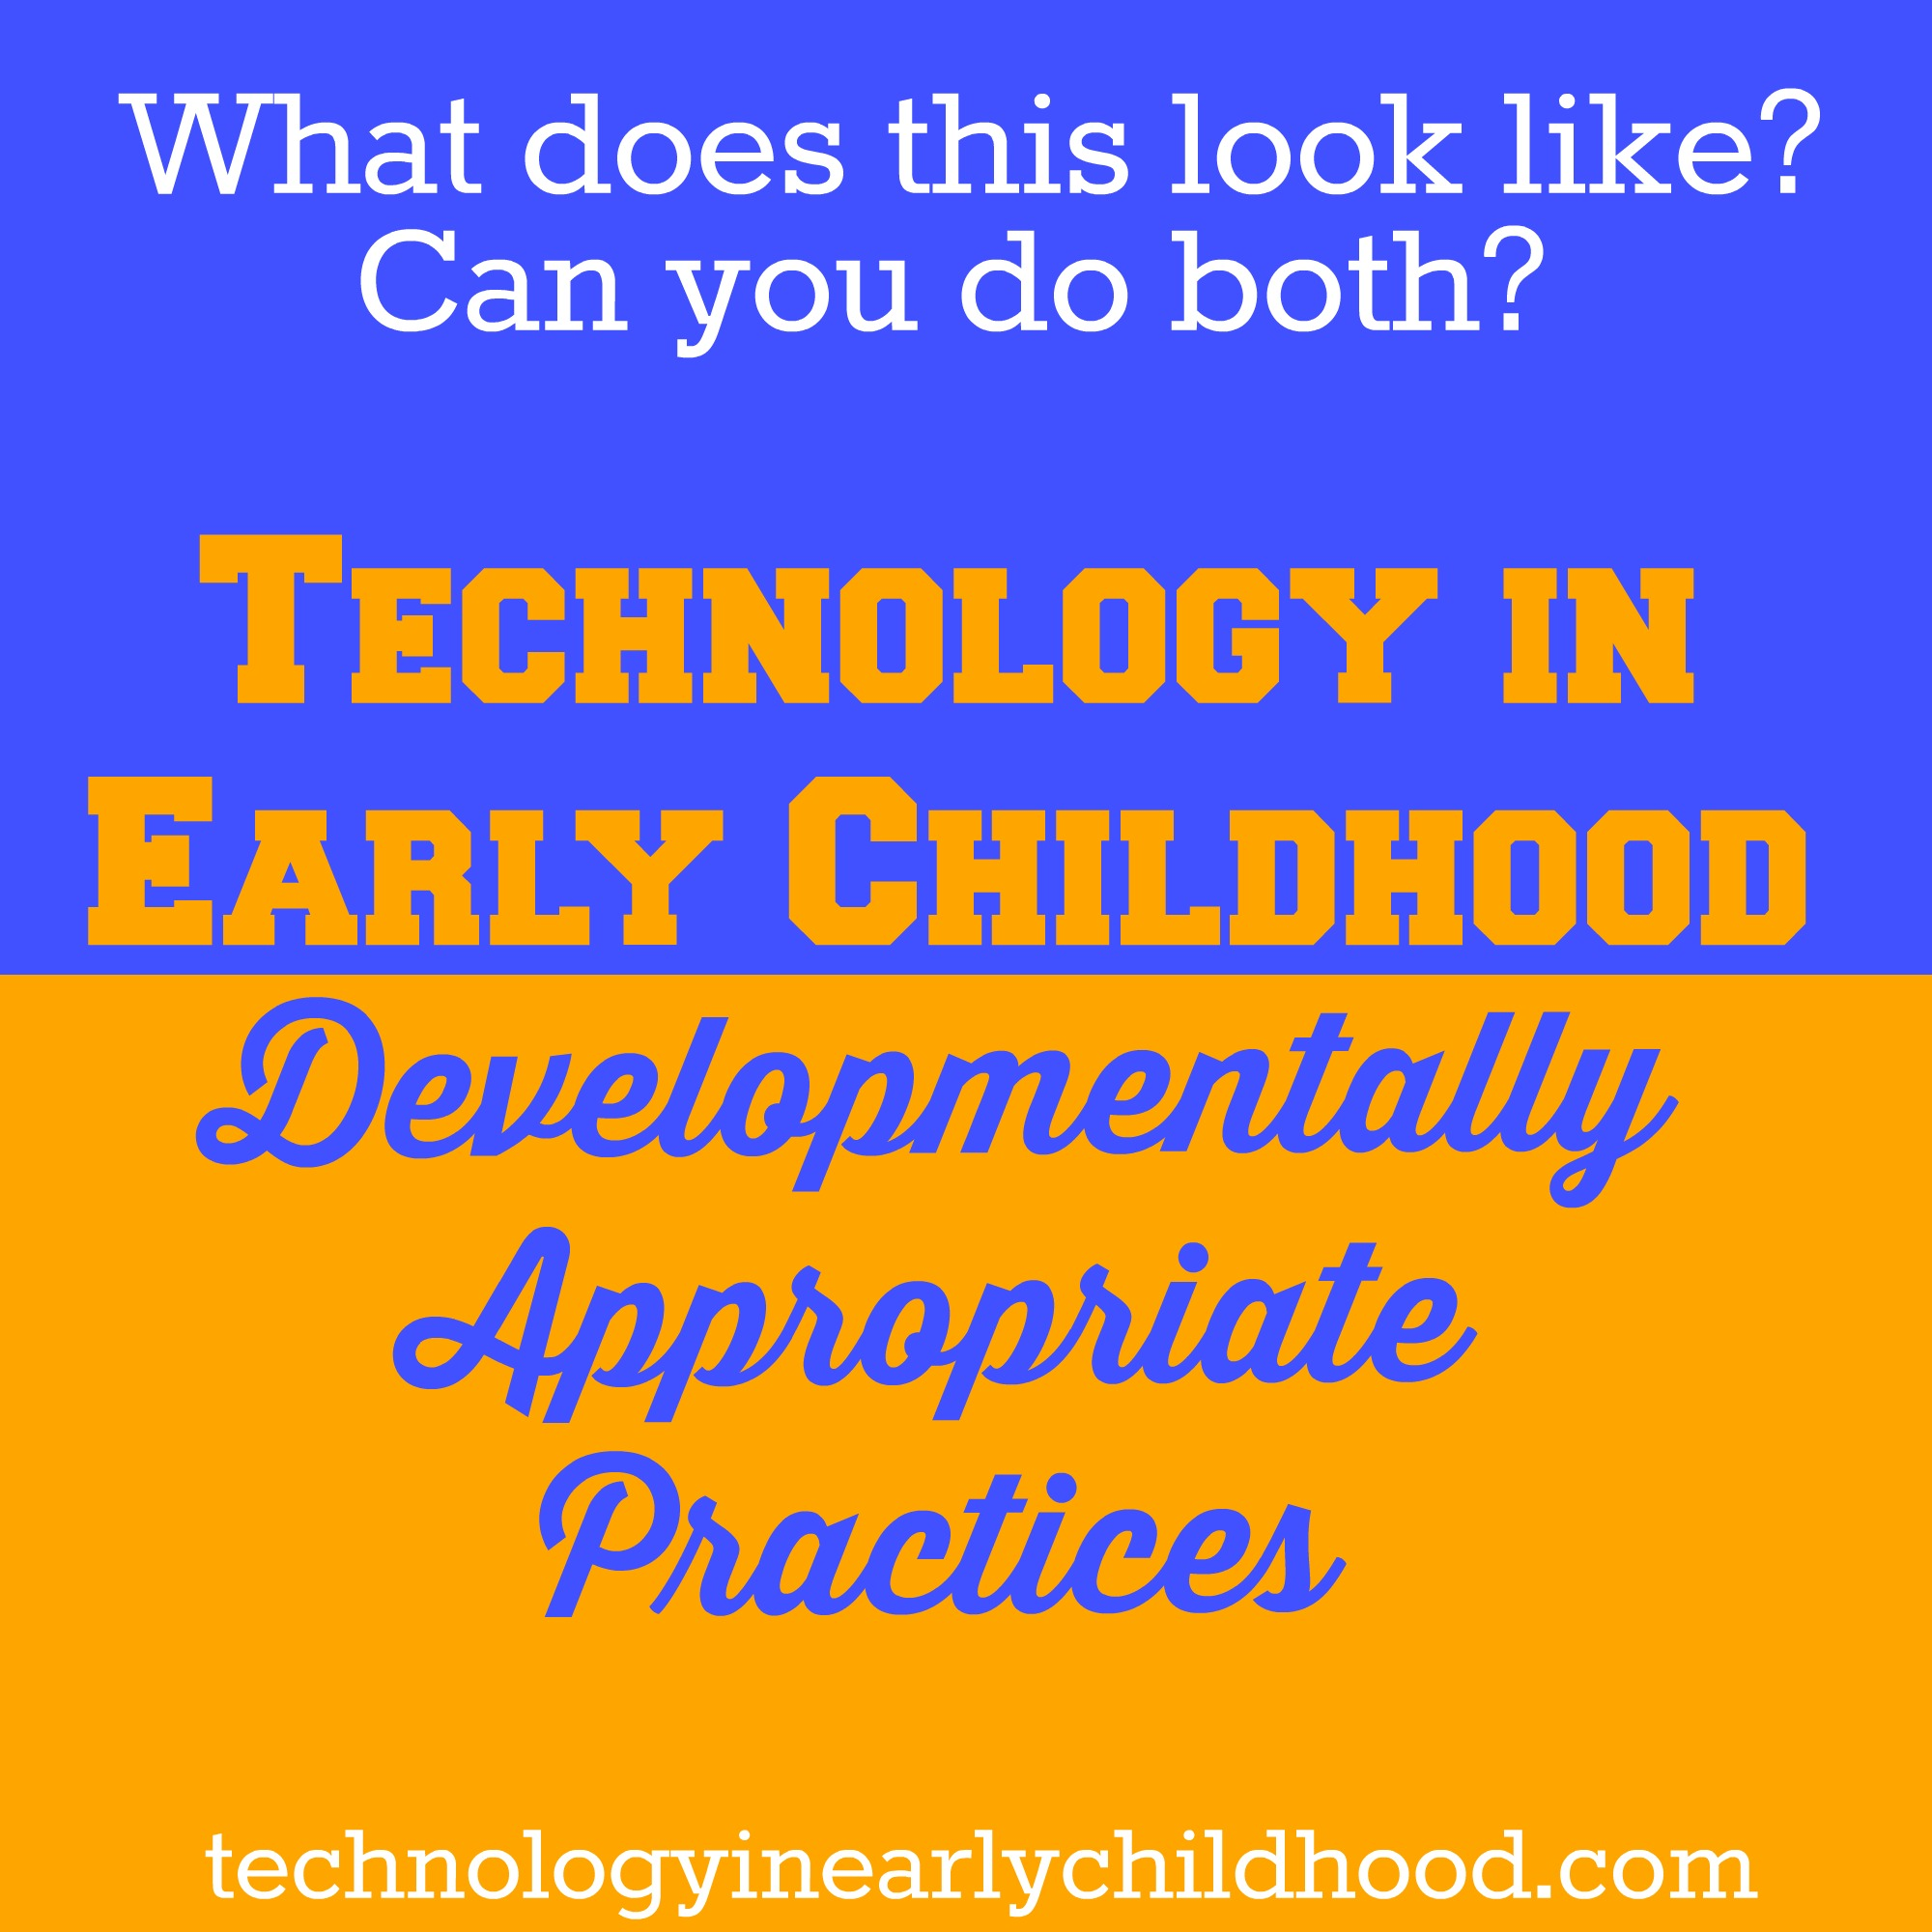 Developmentally Appropriate Practices and Technology In Early Childhood - Technology In Early Childhood